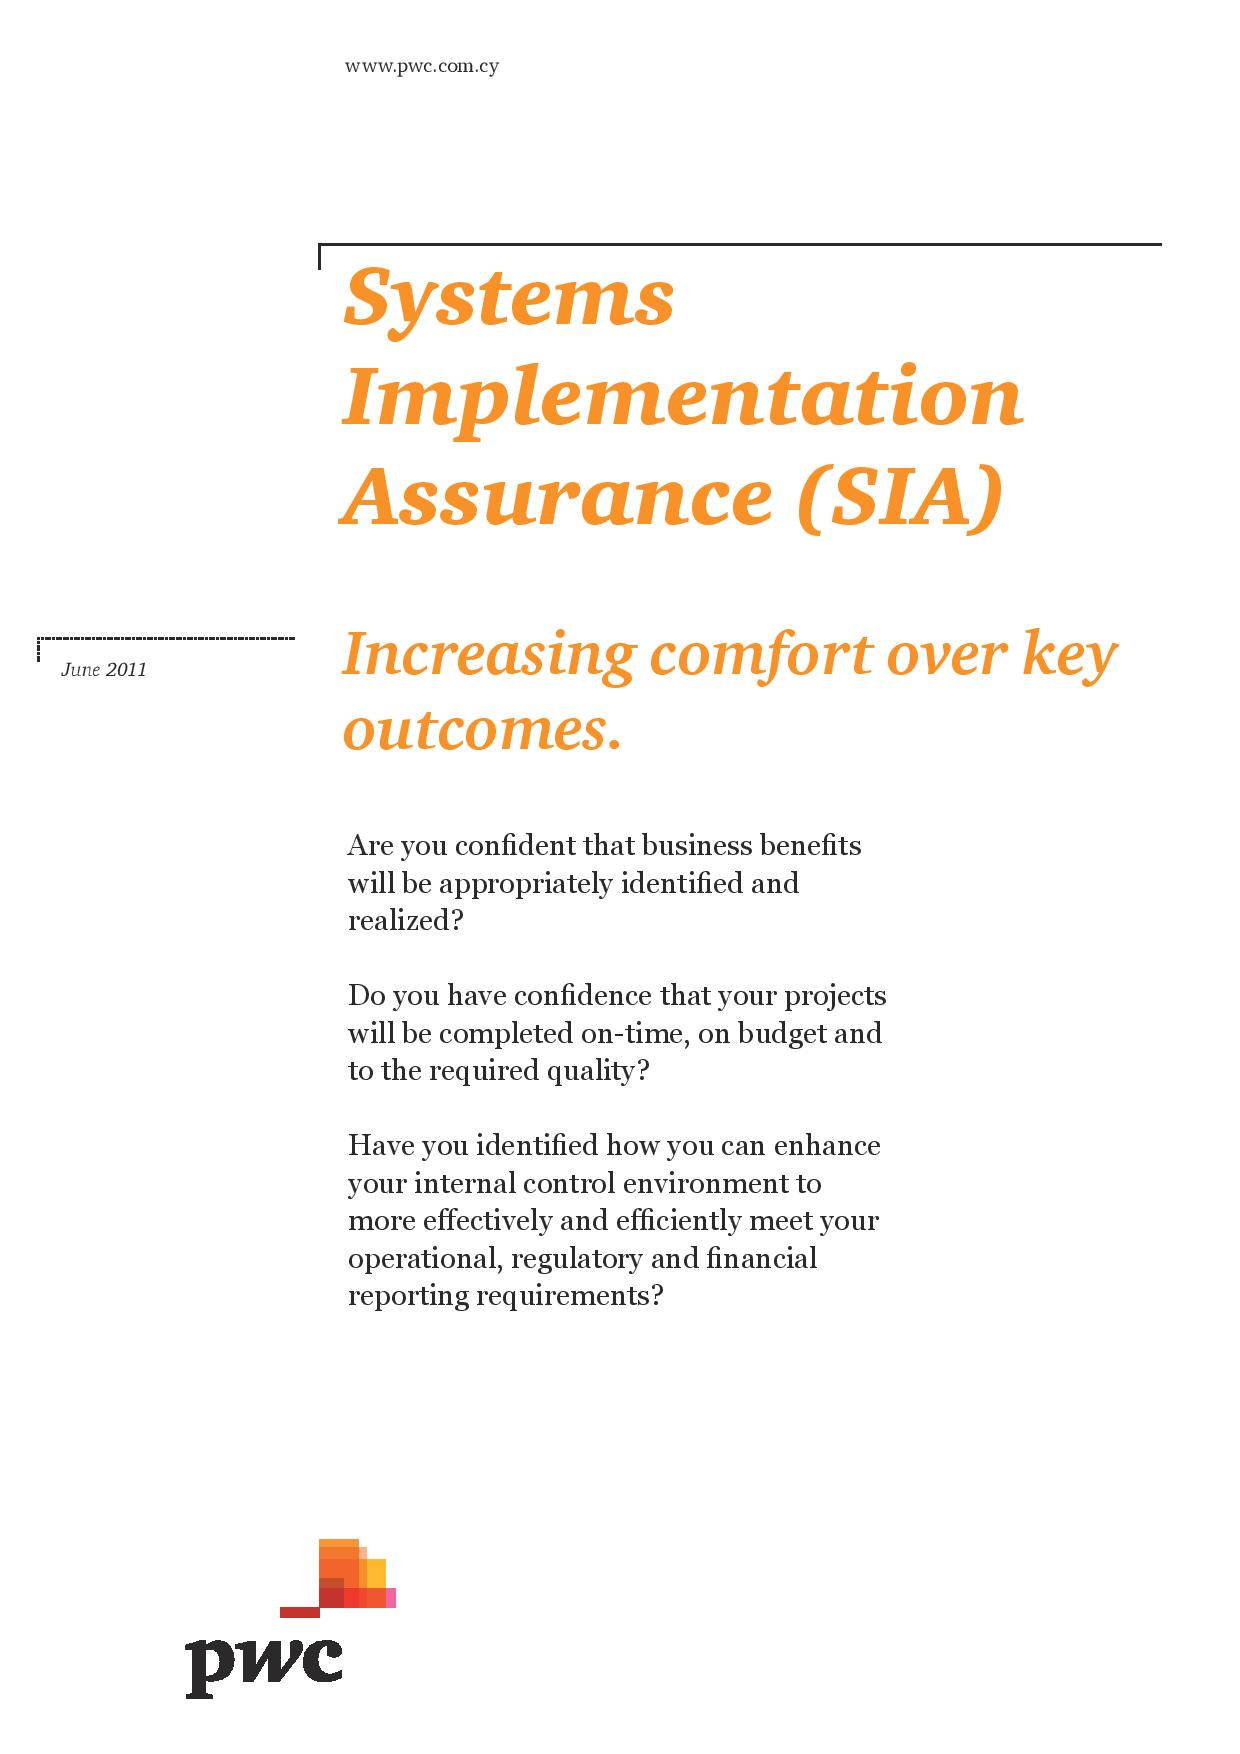 Systems Implementation Assurance - January 2013